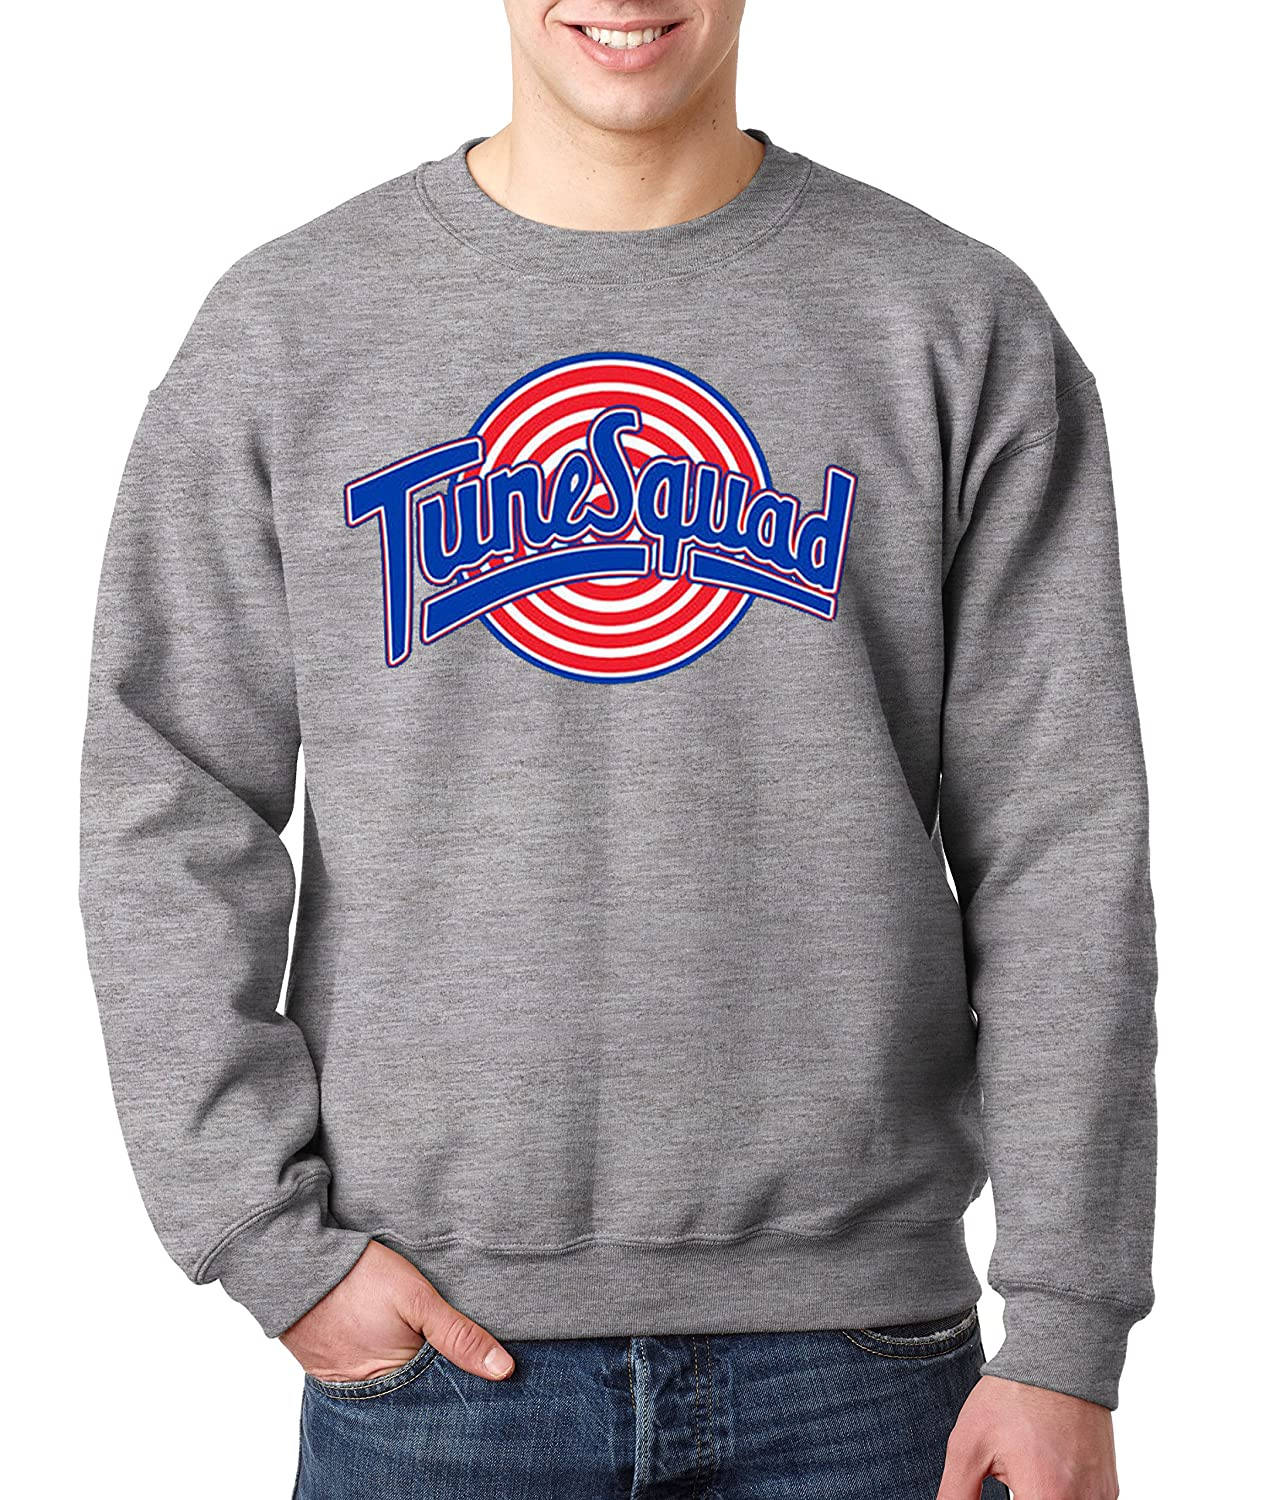 Amazon.com: New Way 487 - Crewneck Tune Squad Space Jam Basketball ...